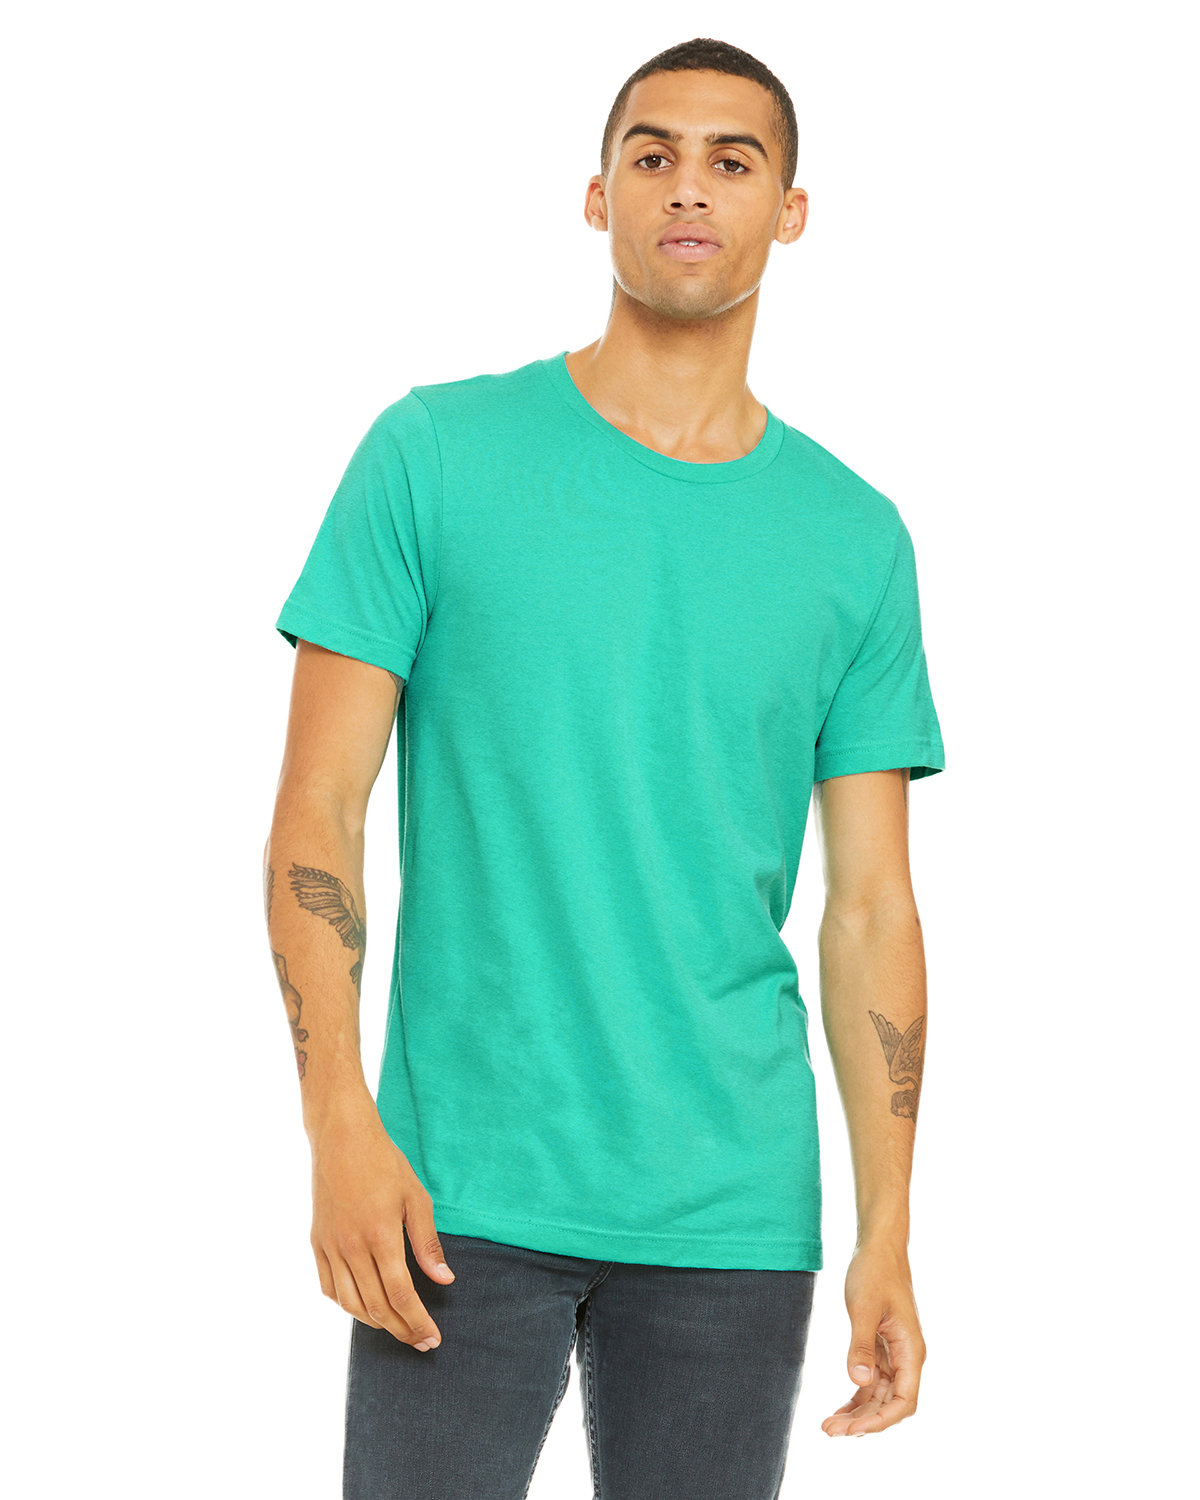 Bella + Canvas Unisex Heather CVC T-Shirt HEATHER SEA GRN